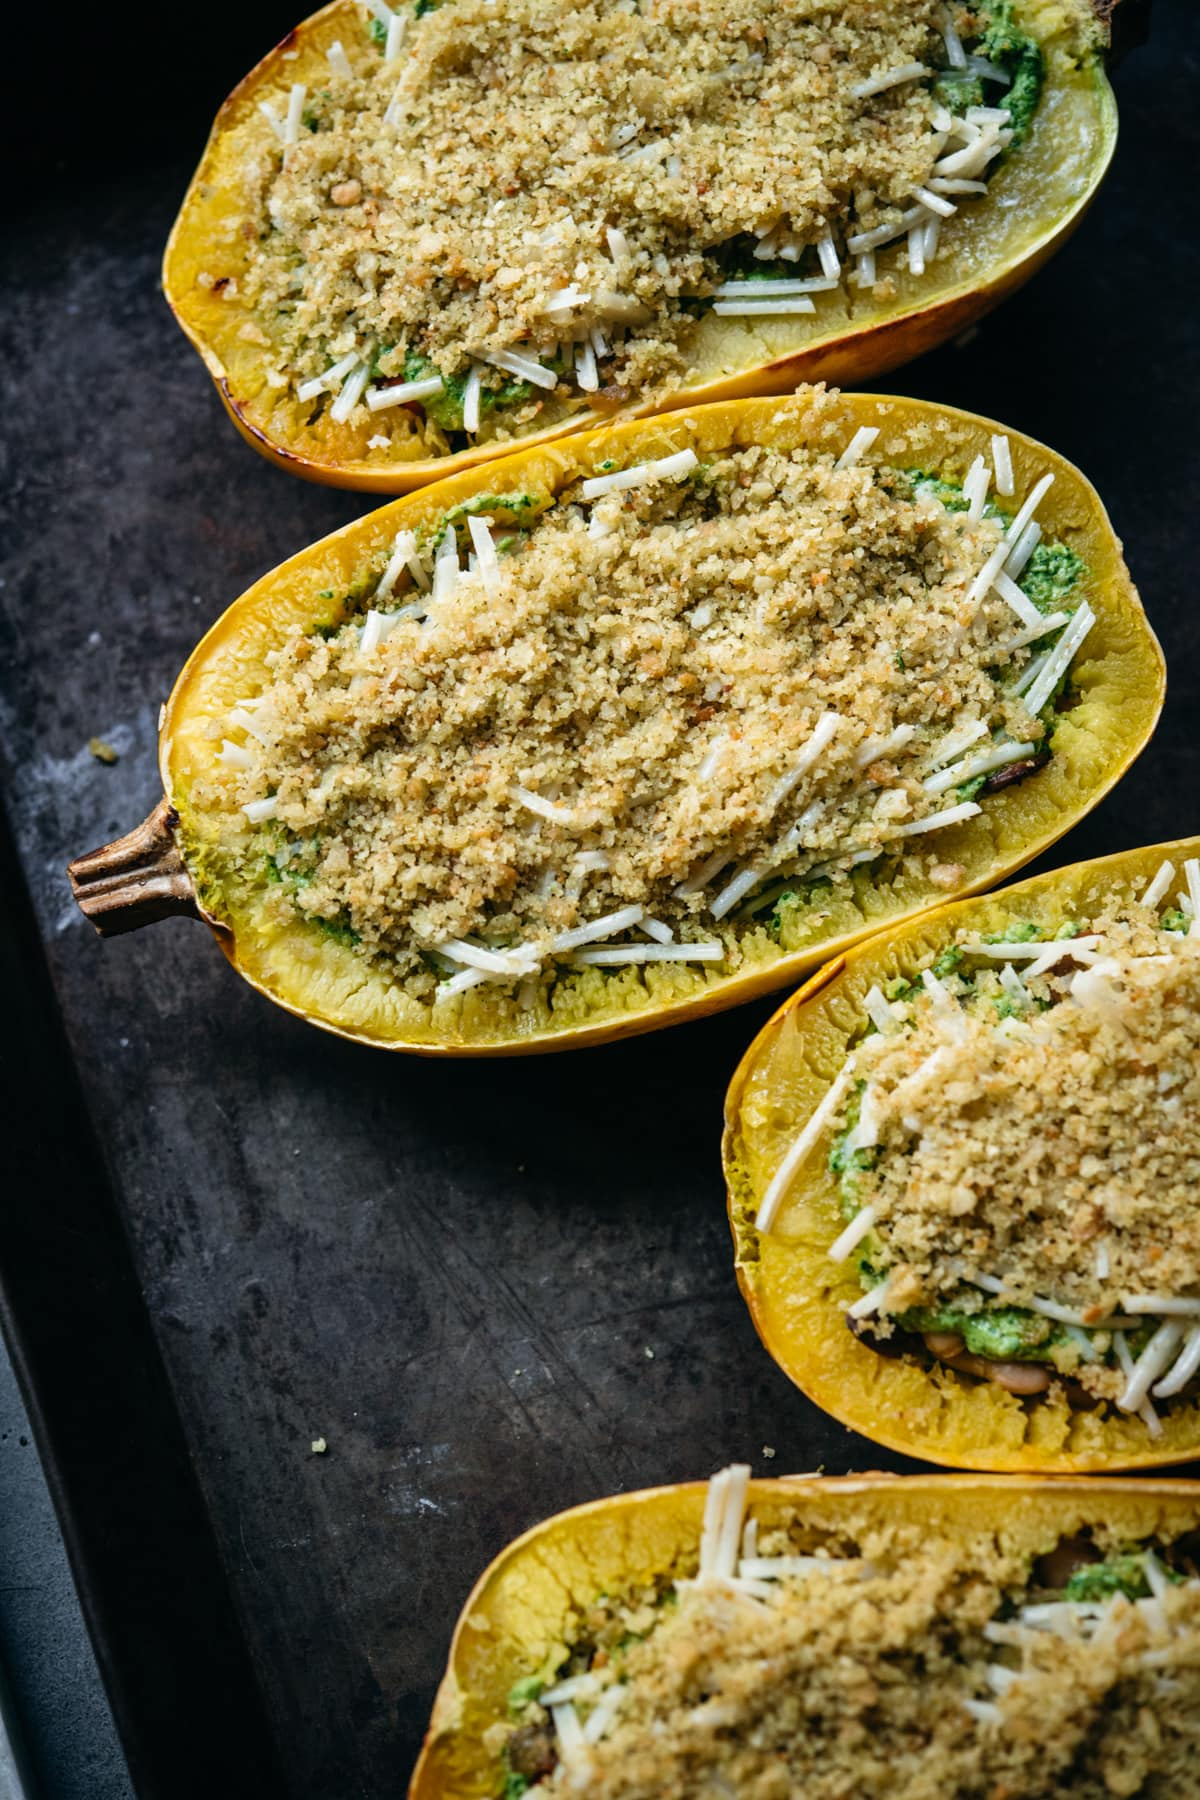 spaghetti squash topped with cheese and breadcrumbs.